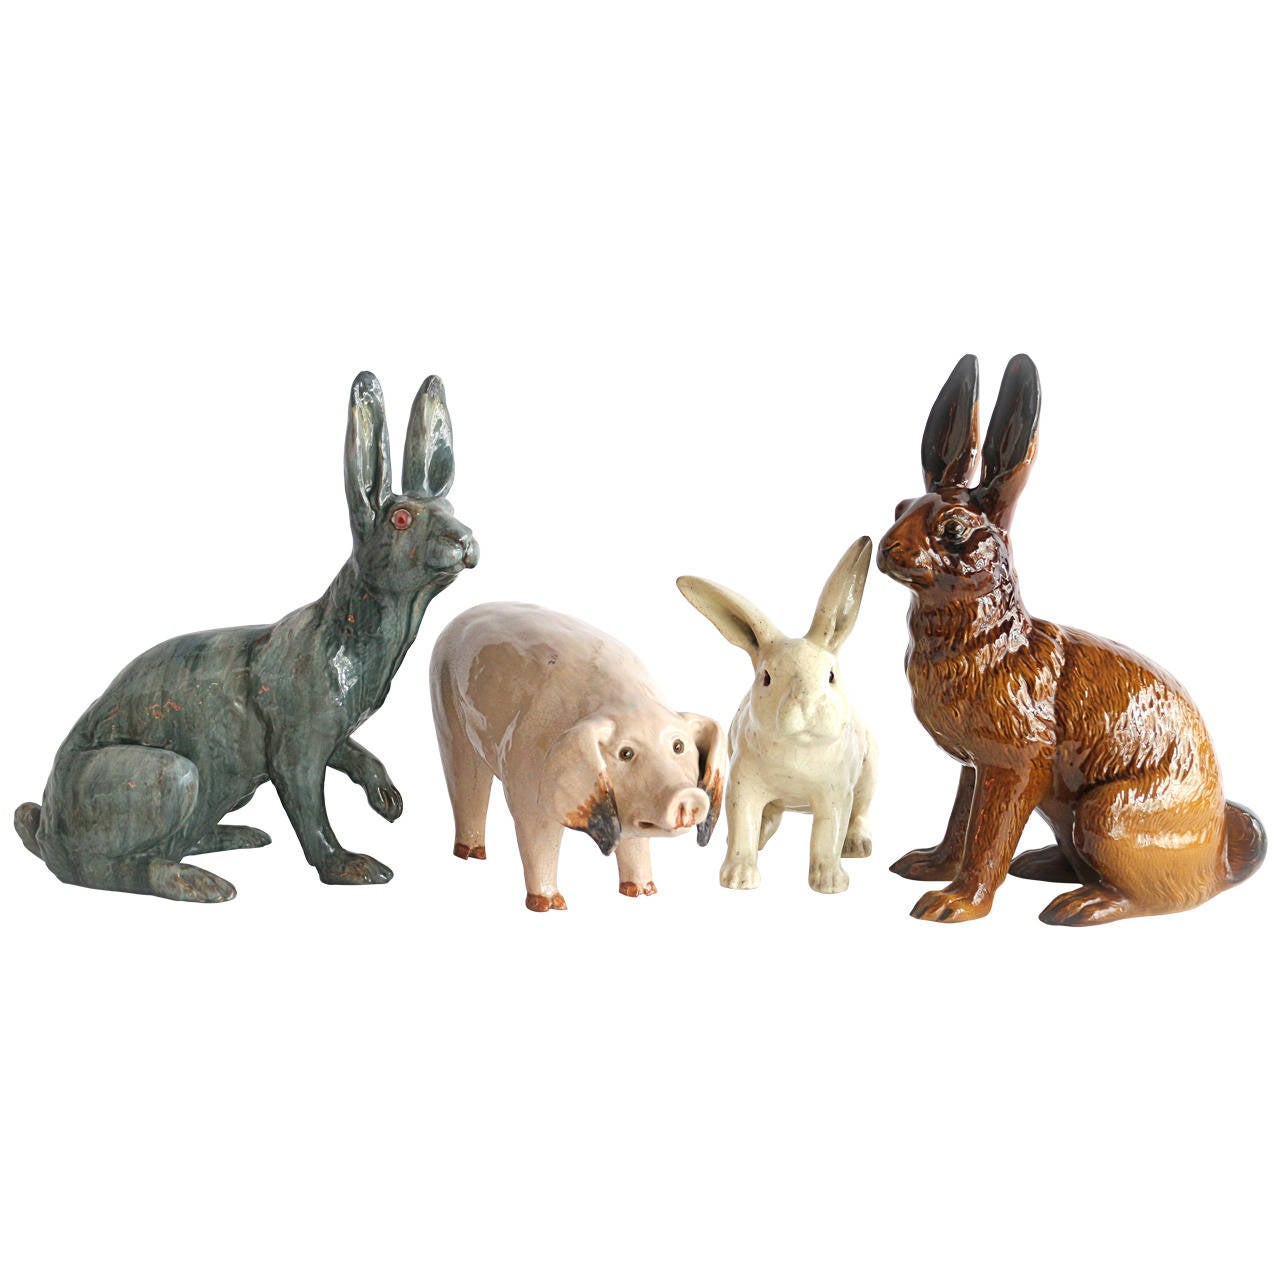 Set of Four Glazed Terracotta Display Animals, Late 19th and Early 20th Century